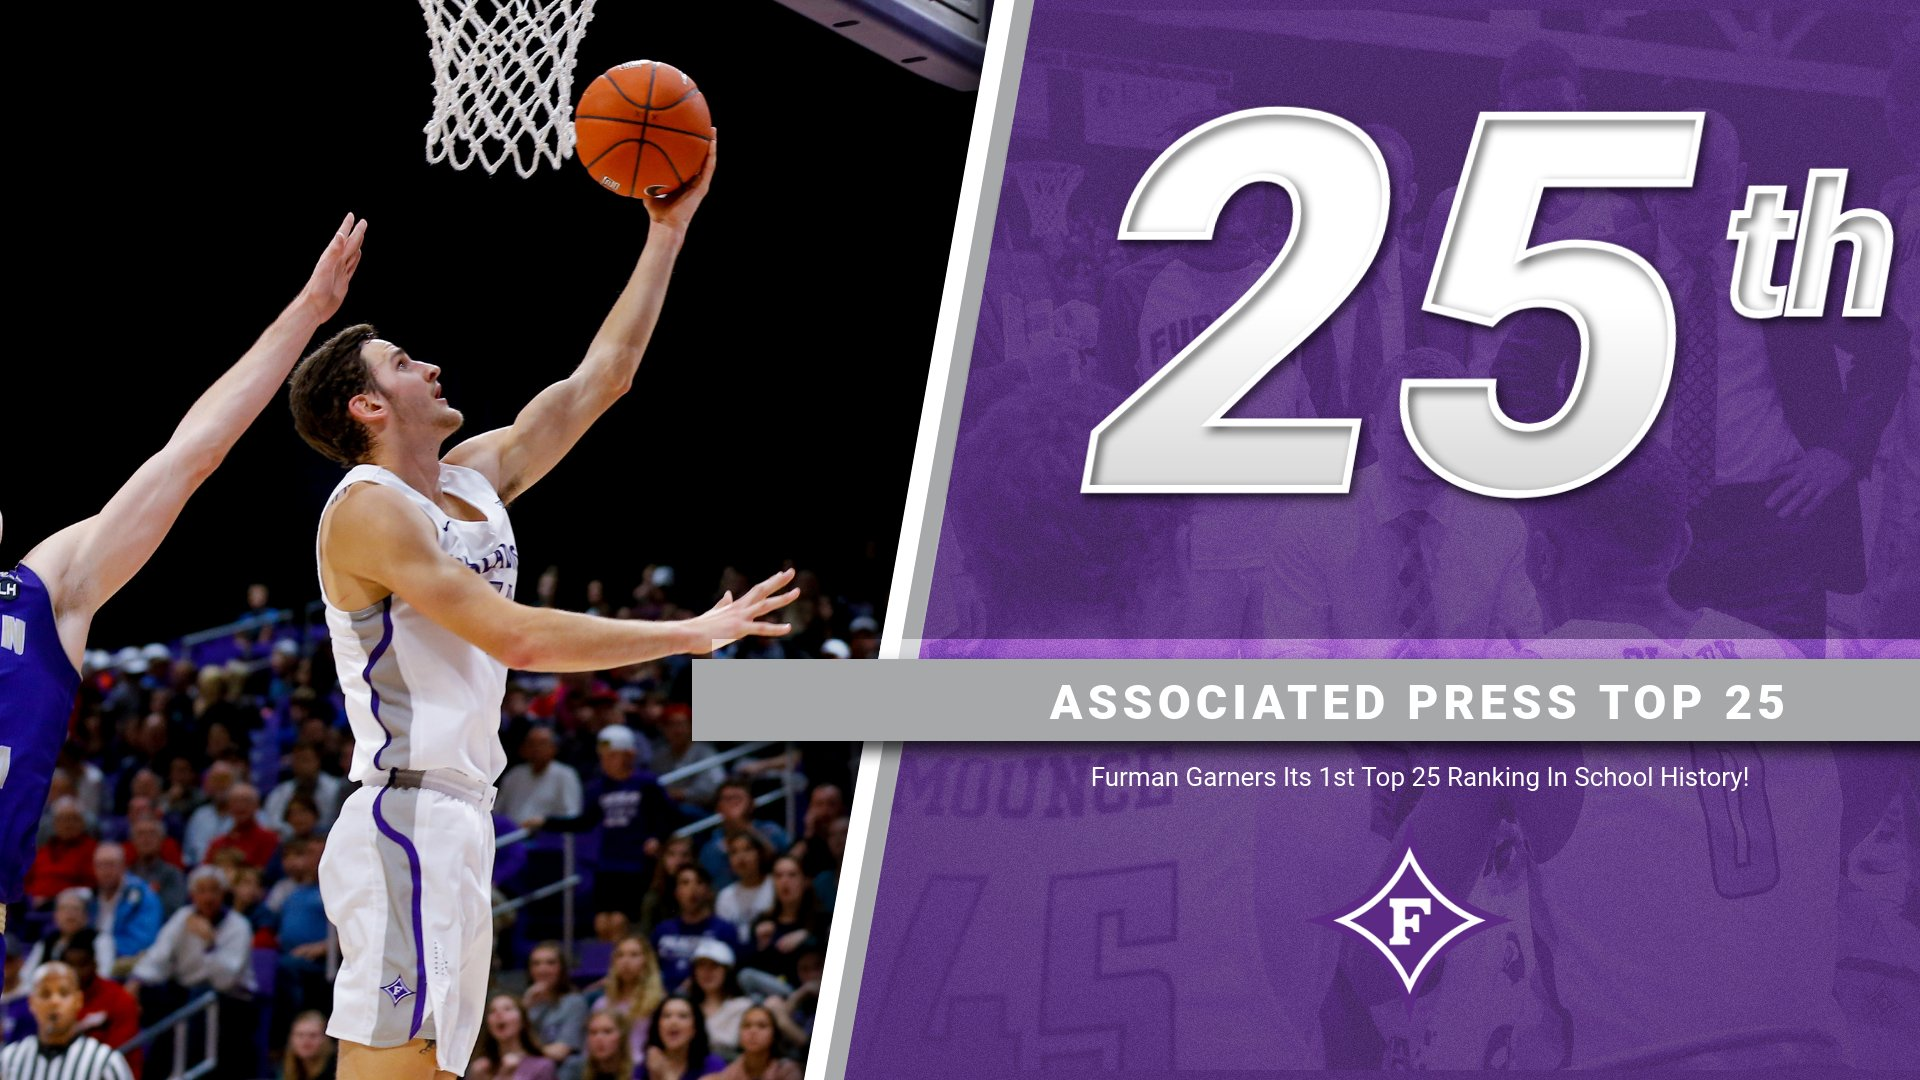 Furman made its first appearance in the Associated Press Top 25 Poll on Monday when the Paladins earned the No. 25 spot.